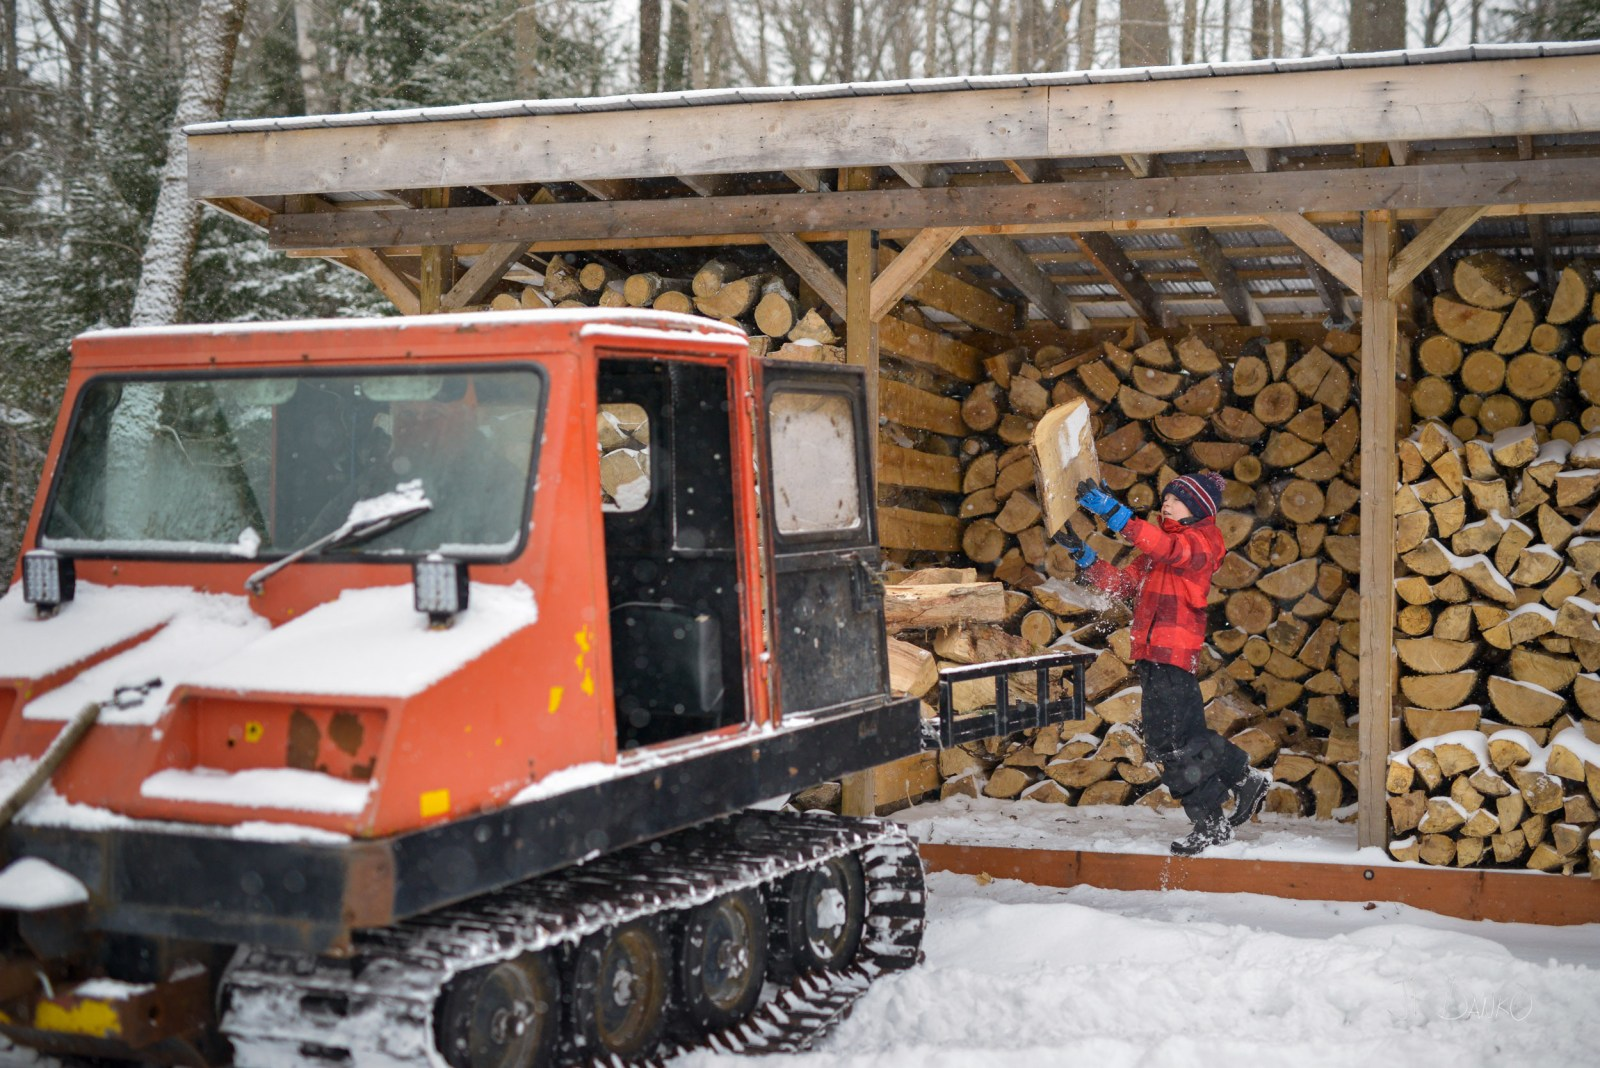 Boy in red winter jacket tosses firewood from wood shed onto bed of snow groomer machine